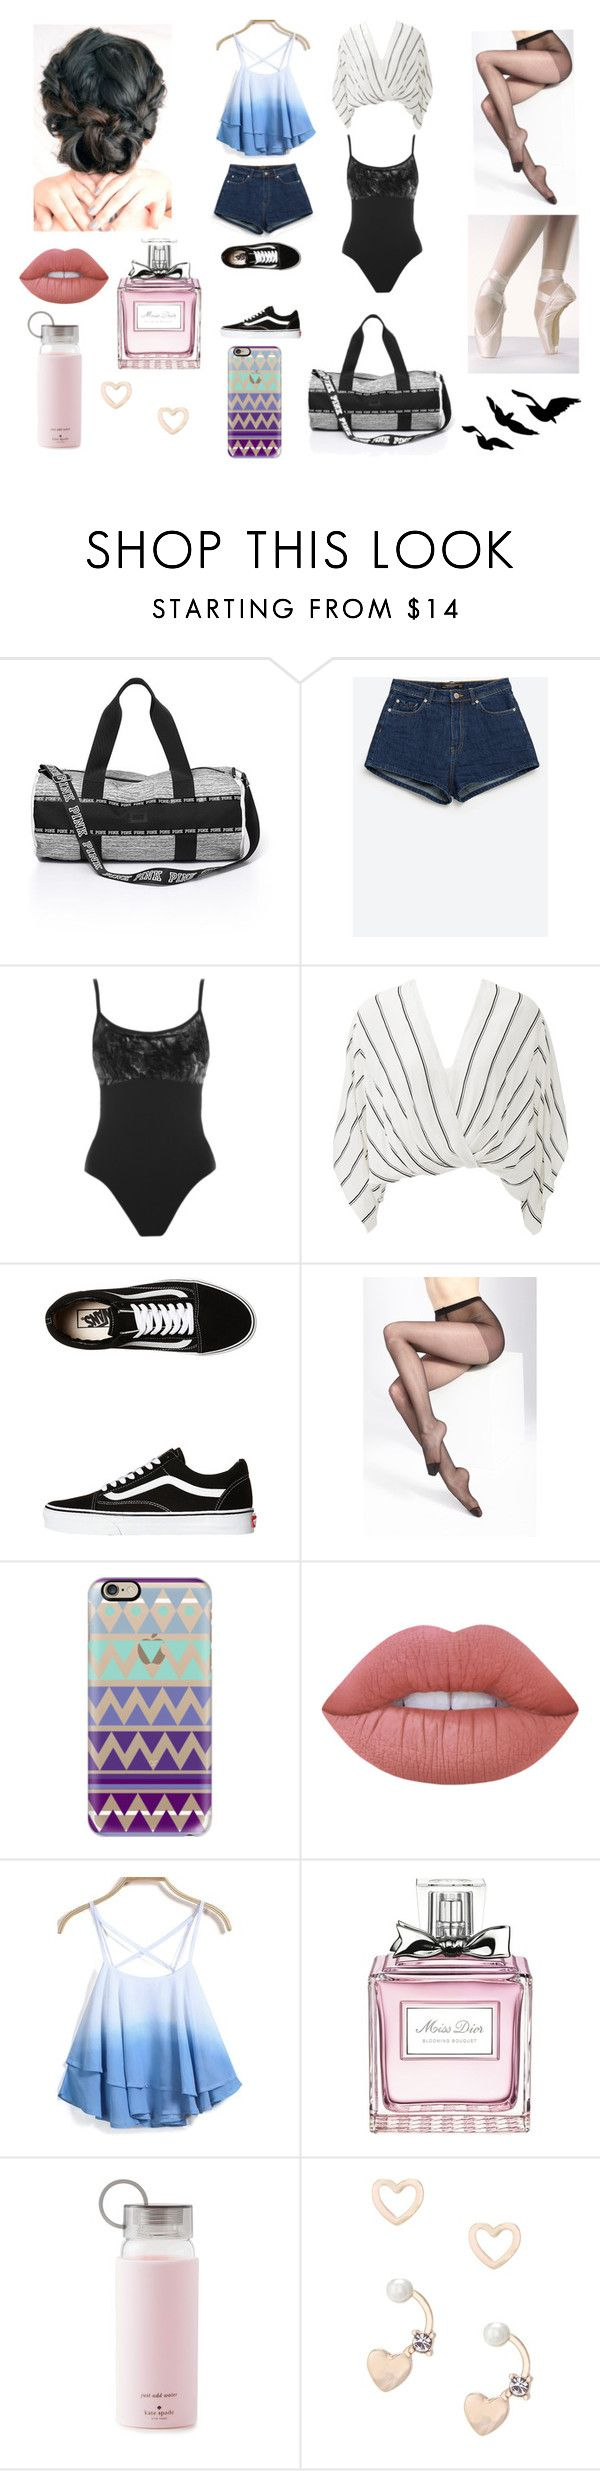 """Halsey - Colors"" by samanthadanetti on Polyvore featuring moda, MAYA, Zara, Free People, Vans, Casetify, Lime Crime, Christian Dior, Kate Spade y Lipsy"